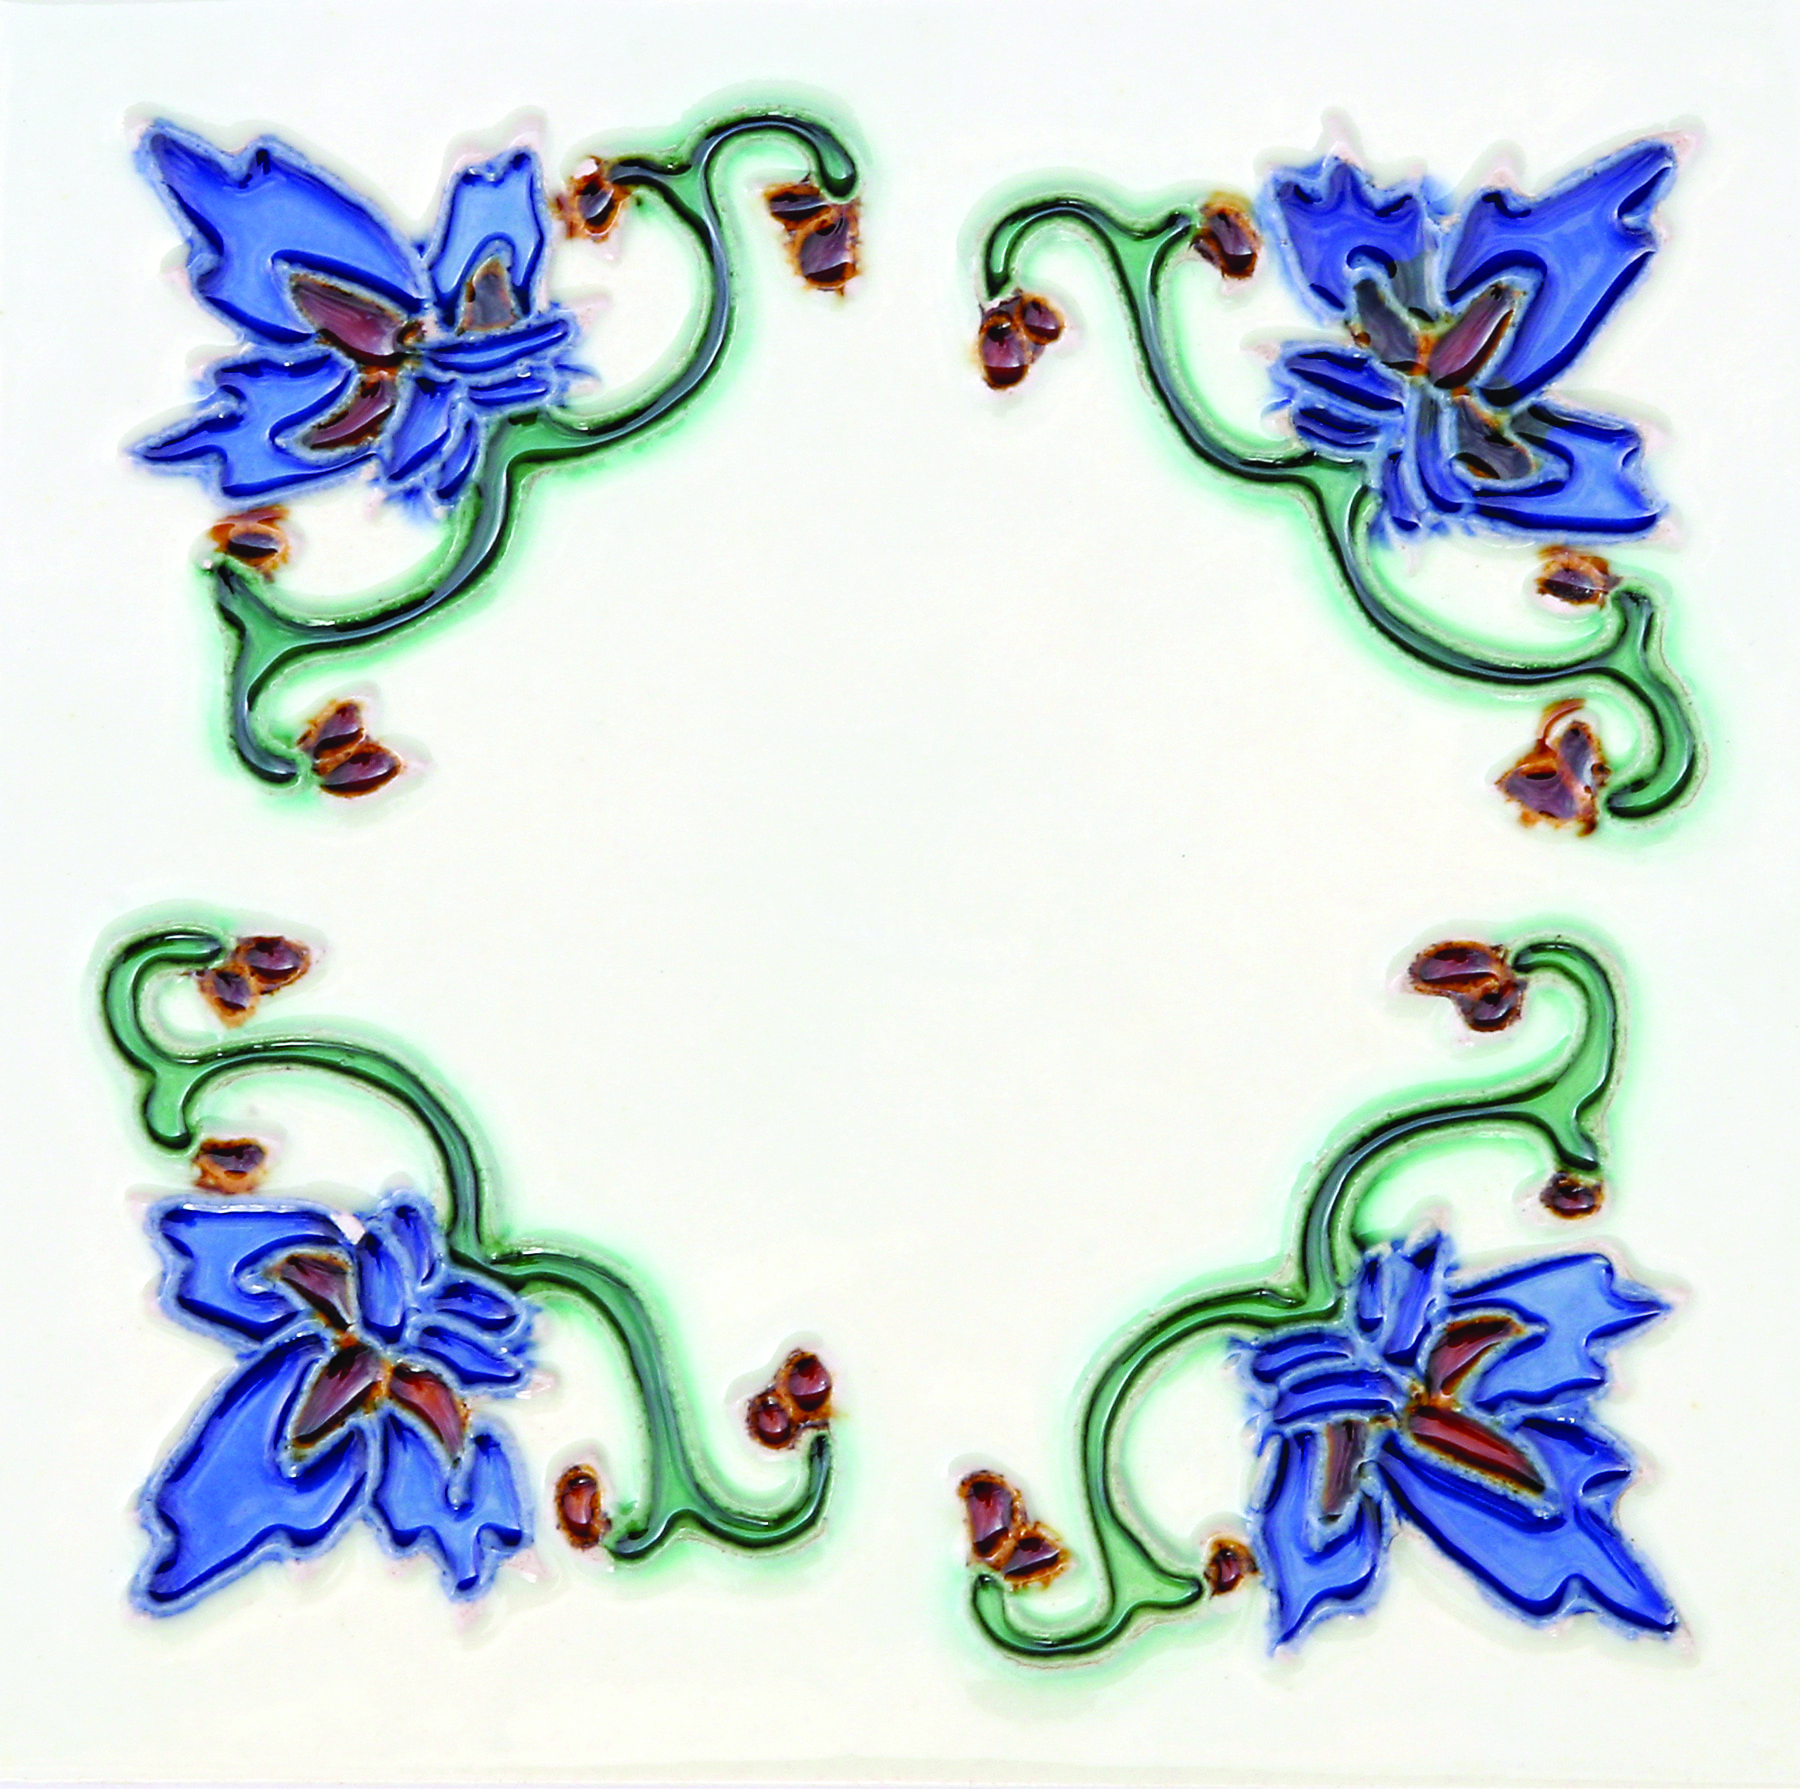 Hand-Painted Ceramic Glazed Wall Tile in Invierno Hand-Painted Ceramic Glazed Wall Tile in Invierno 0